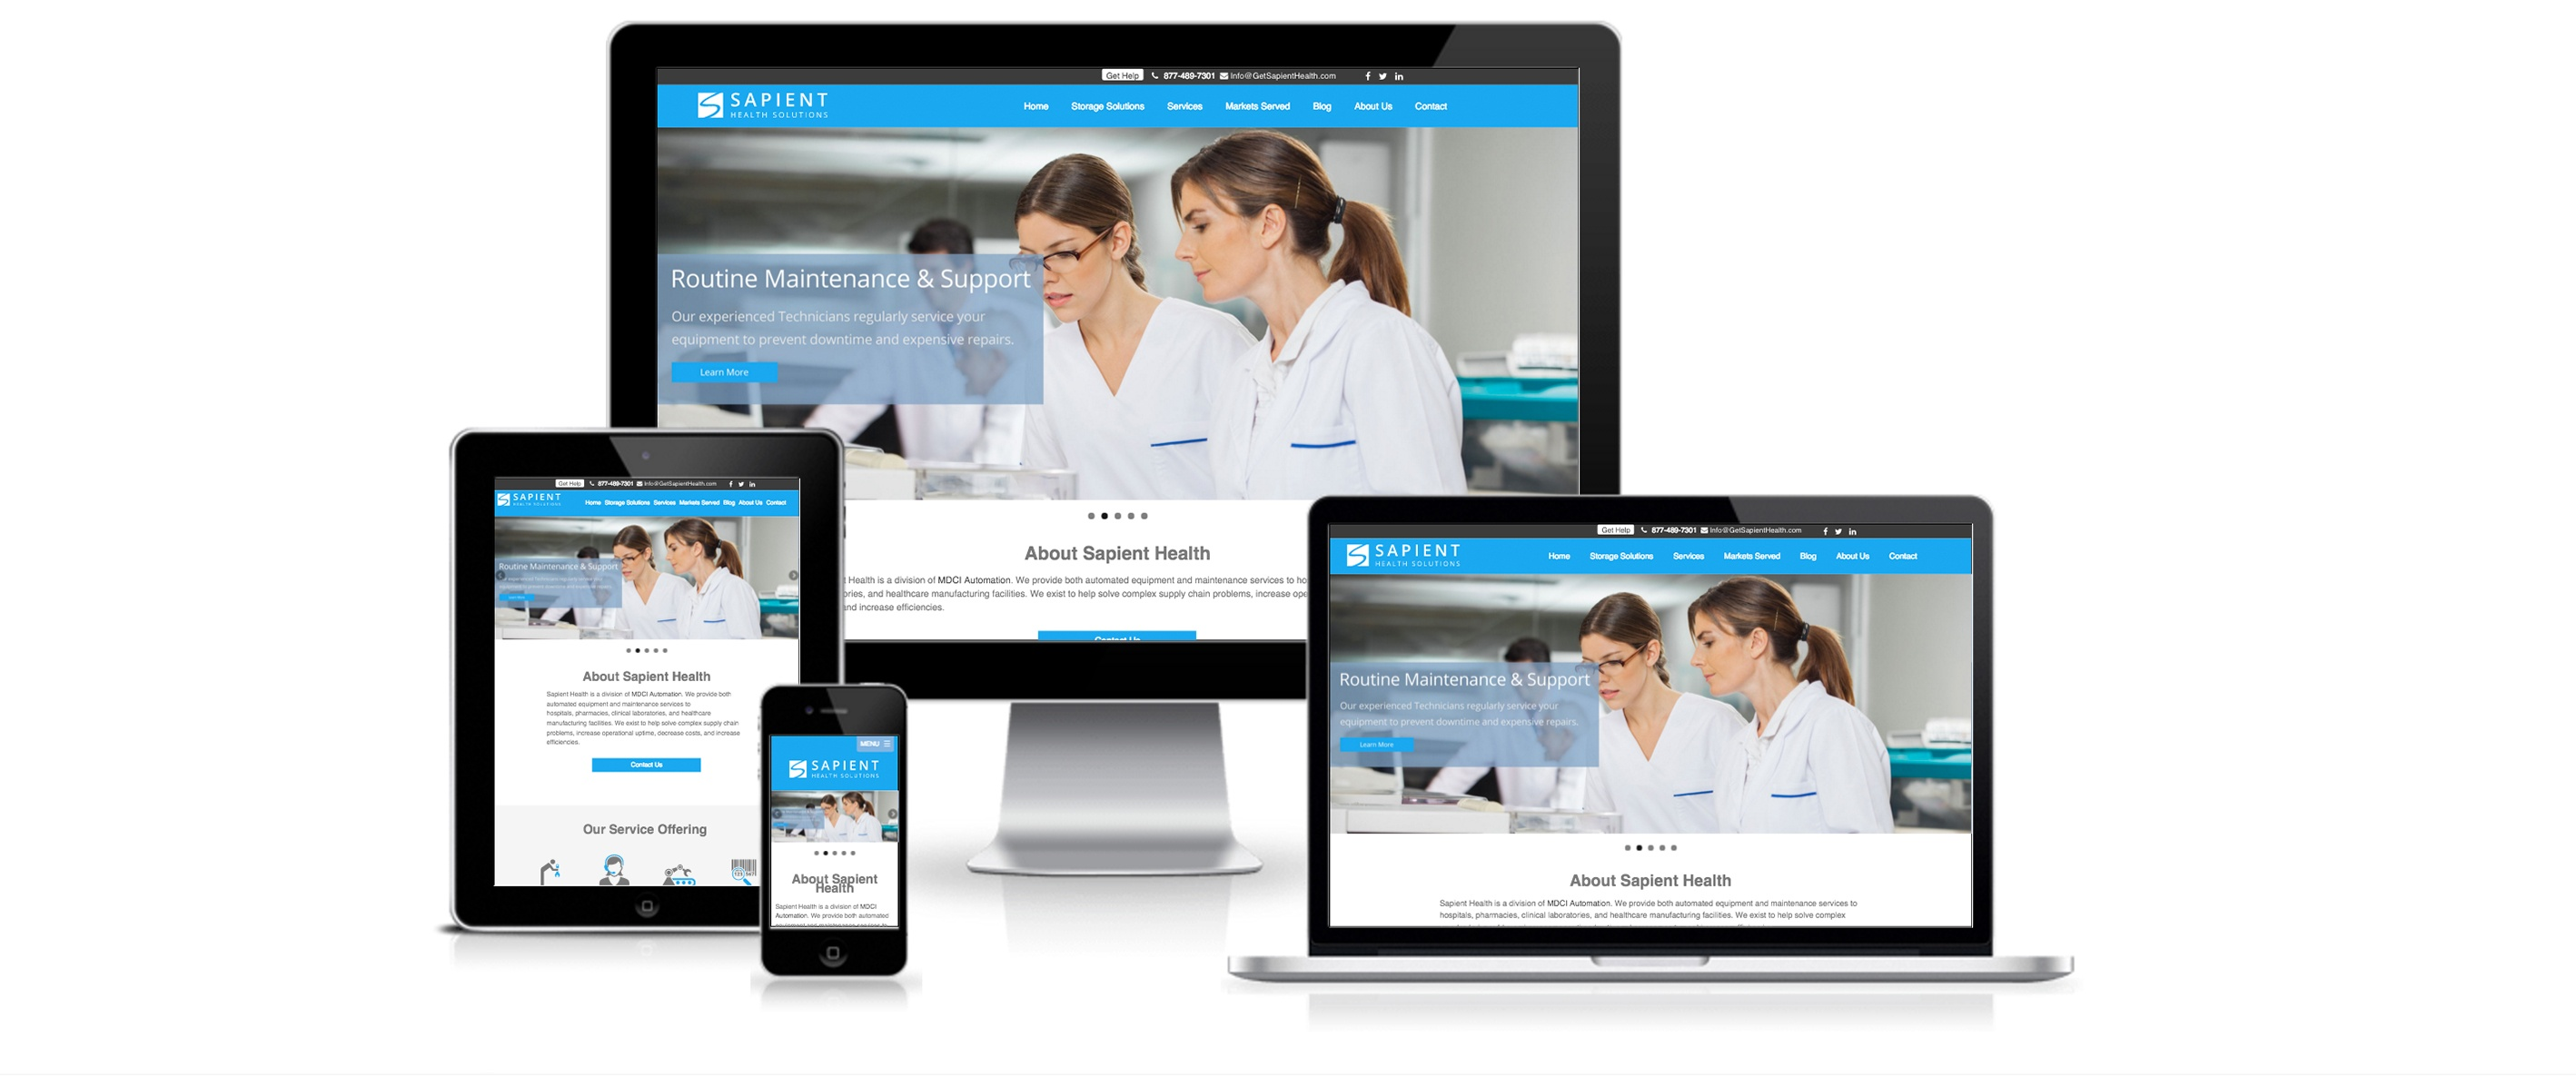 HubSpot Website Design Services for Sapient Health - Created By Spoke